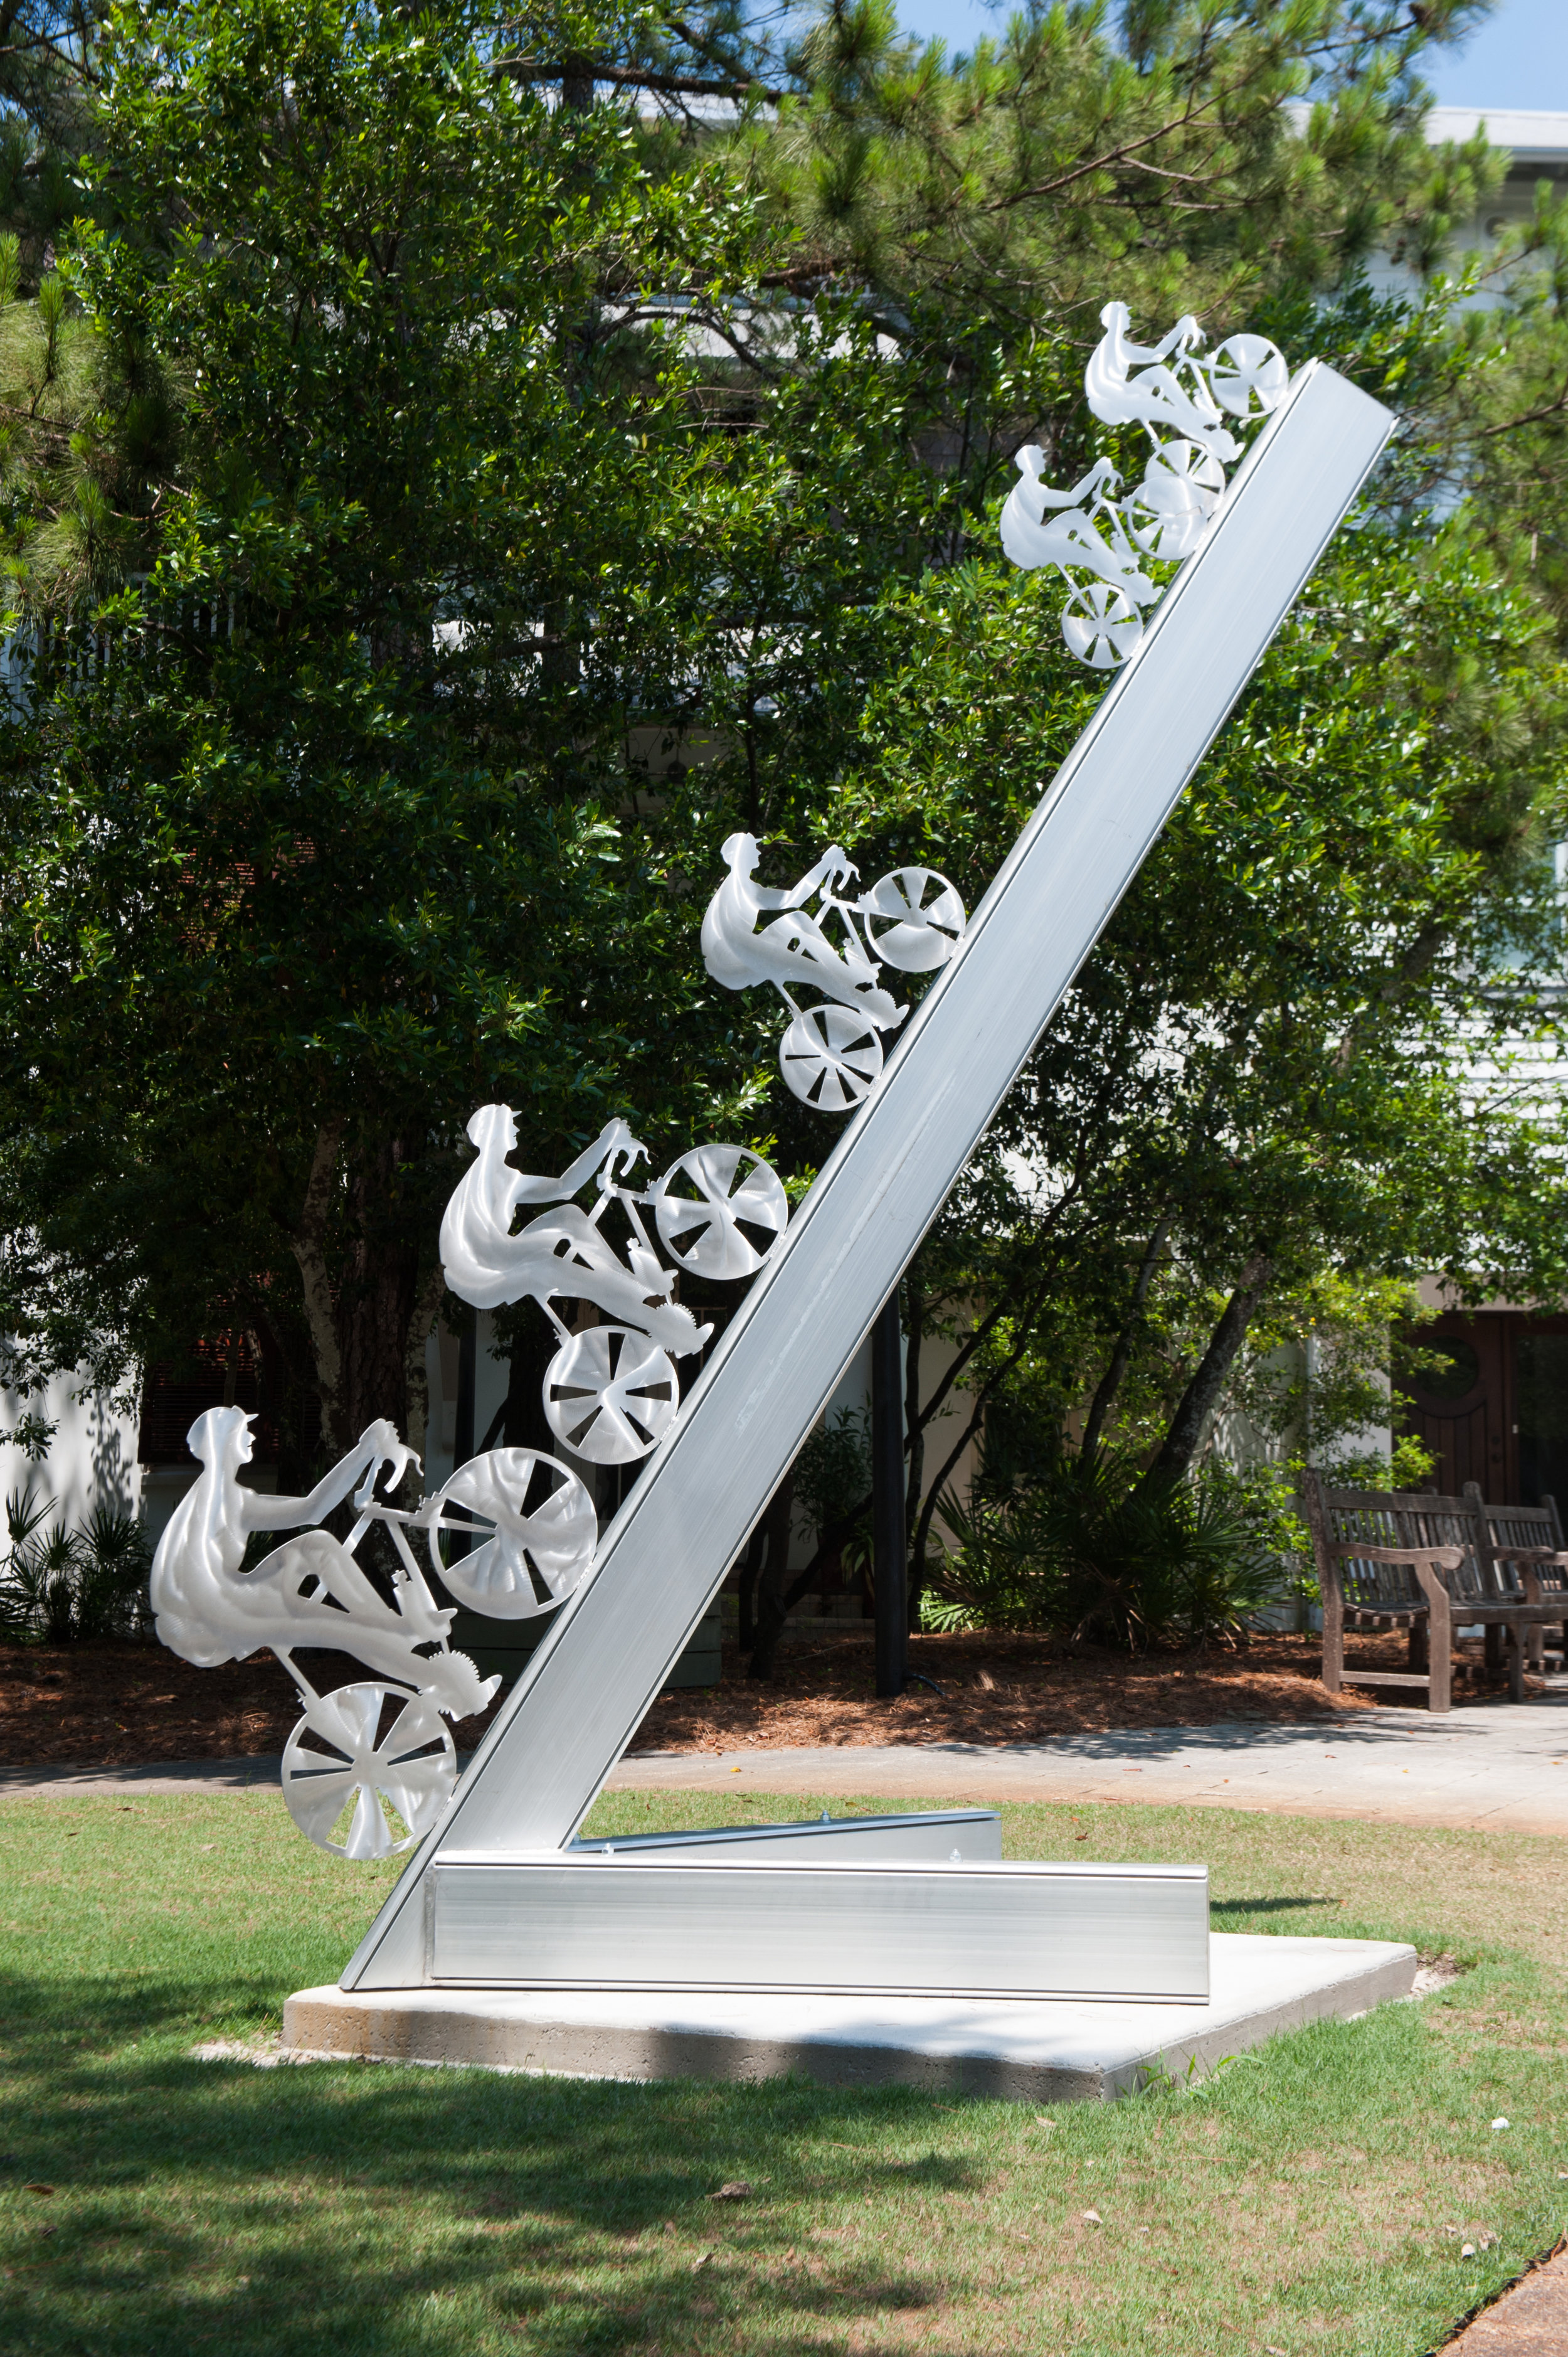 - JIM COLLINSb. 1934Signal Mountain, TennesseeHill Climb II, 2019Aluminum10' x 4' x 5'$12,500Hill Climb II is fabricated in aluminum and in the silhouette technique which characterizes all of my figurative sculpture, both people and animals.Each year, more and more cities are adding bike lanes and bike trails to the city landscape. This sculpture pays homage to this new green revelation in travel.